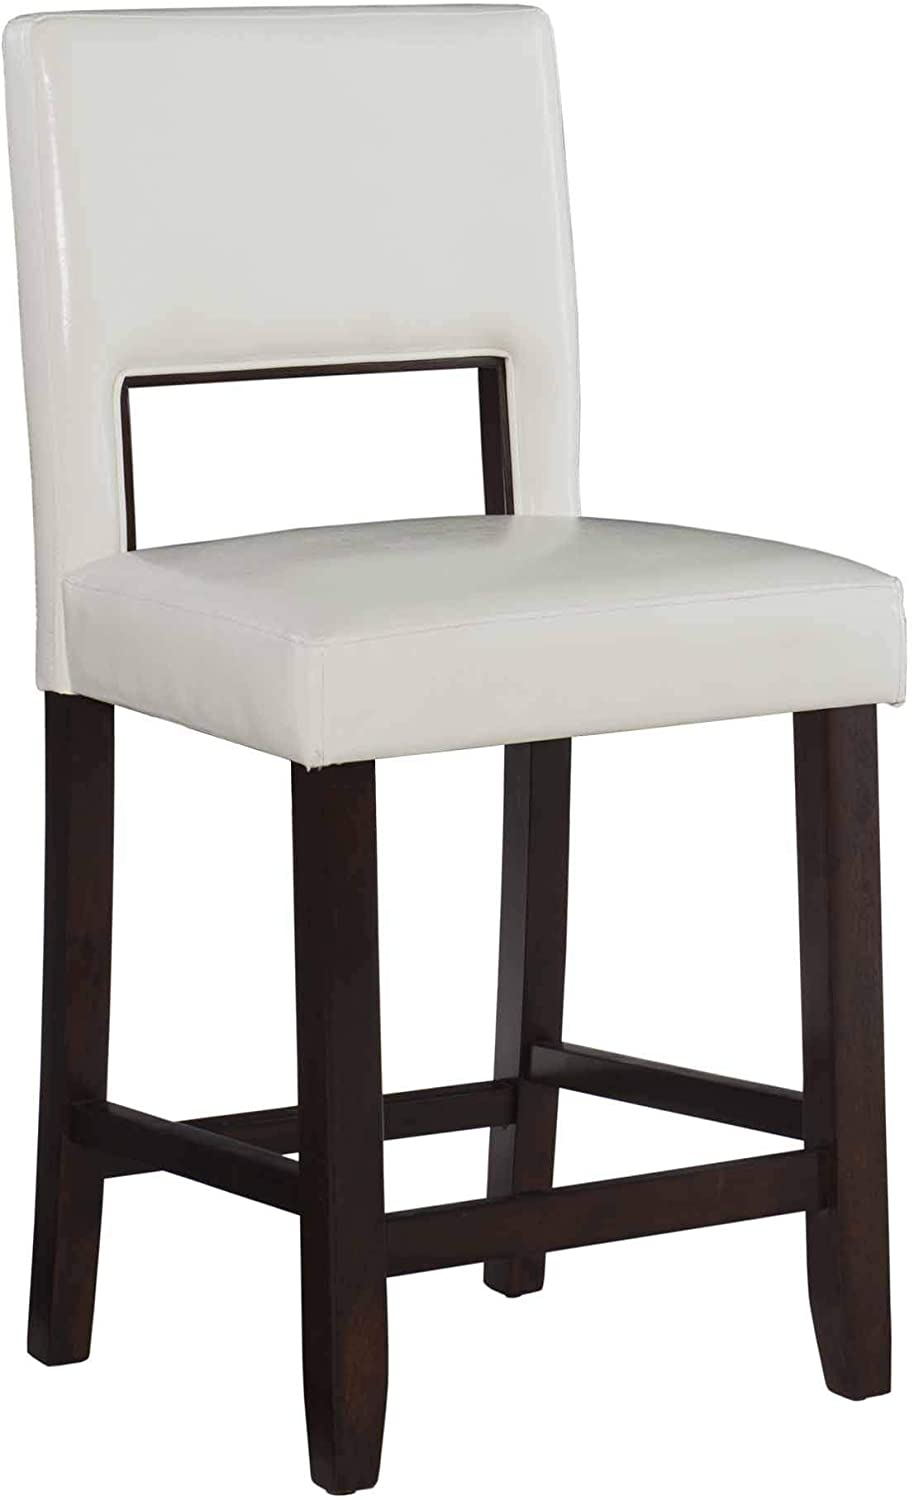 Linon A surprise price is realized Vega 67% OFF of fixed price Counter Stool 24